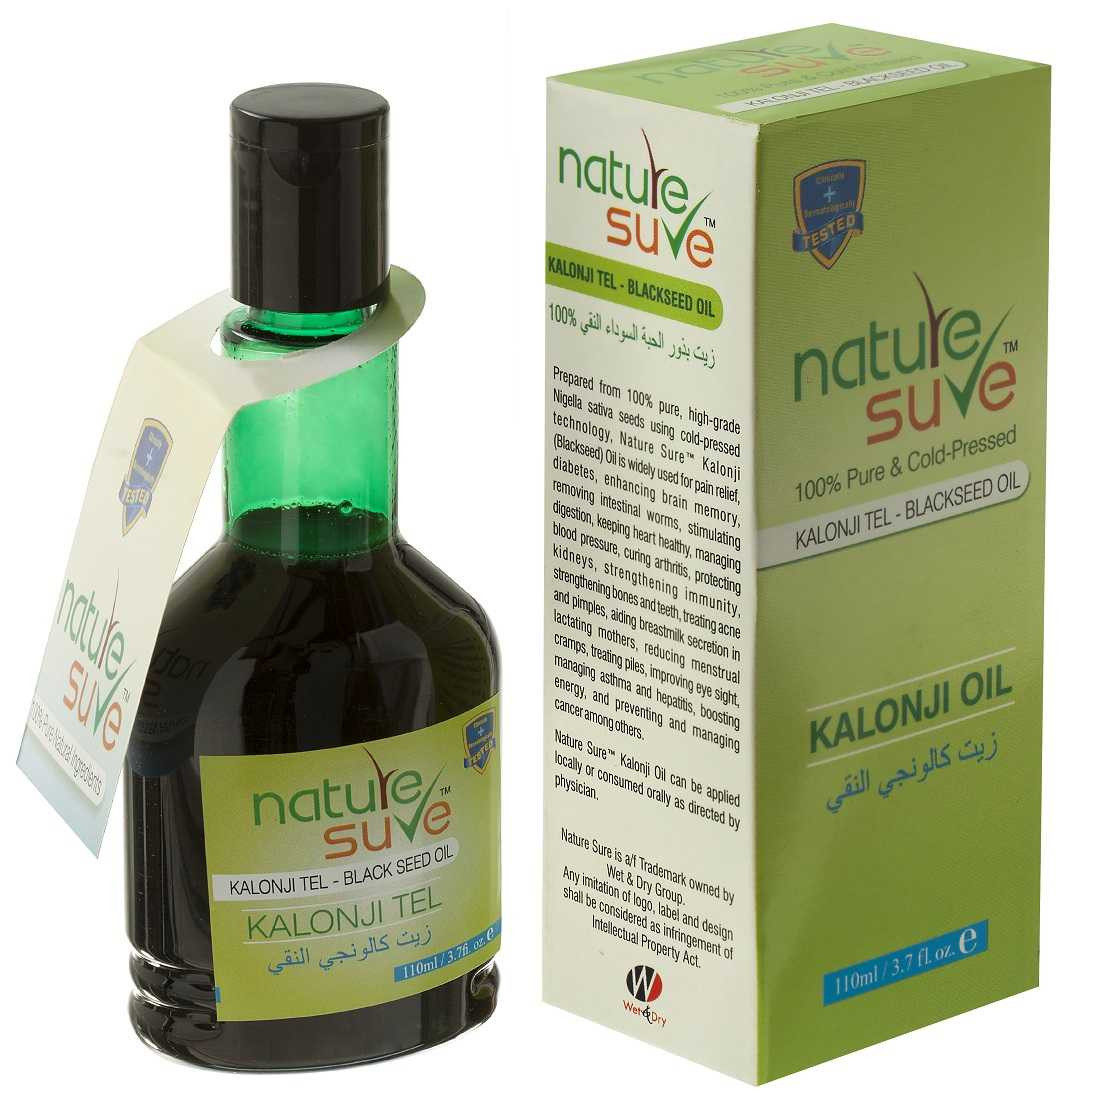 Nature Sure™ Kalonji Tail (Blackseed Oil) - 100% Pure and Cold-Pressed - 110ml